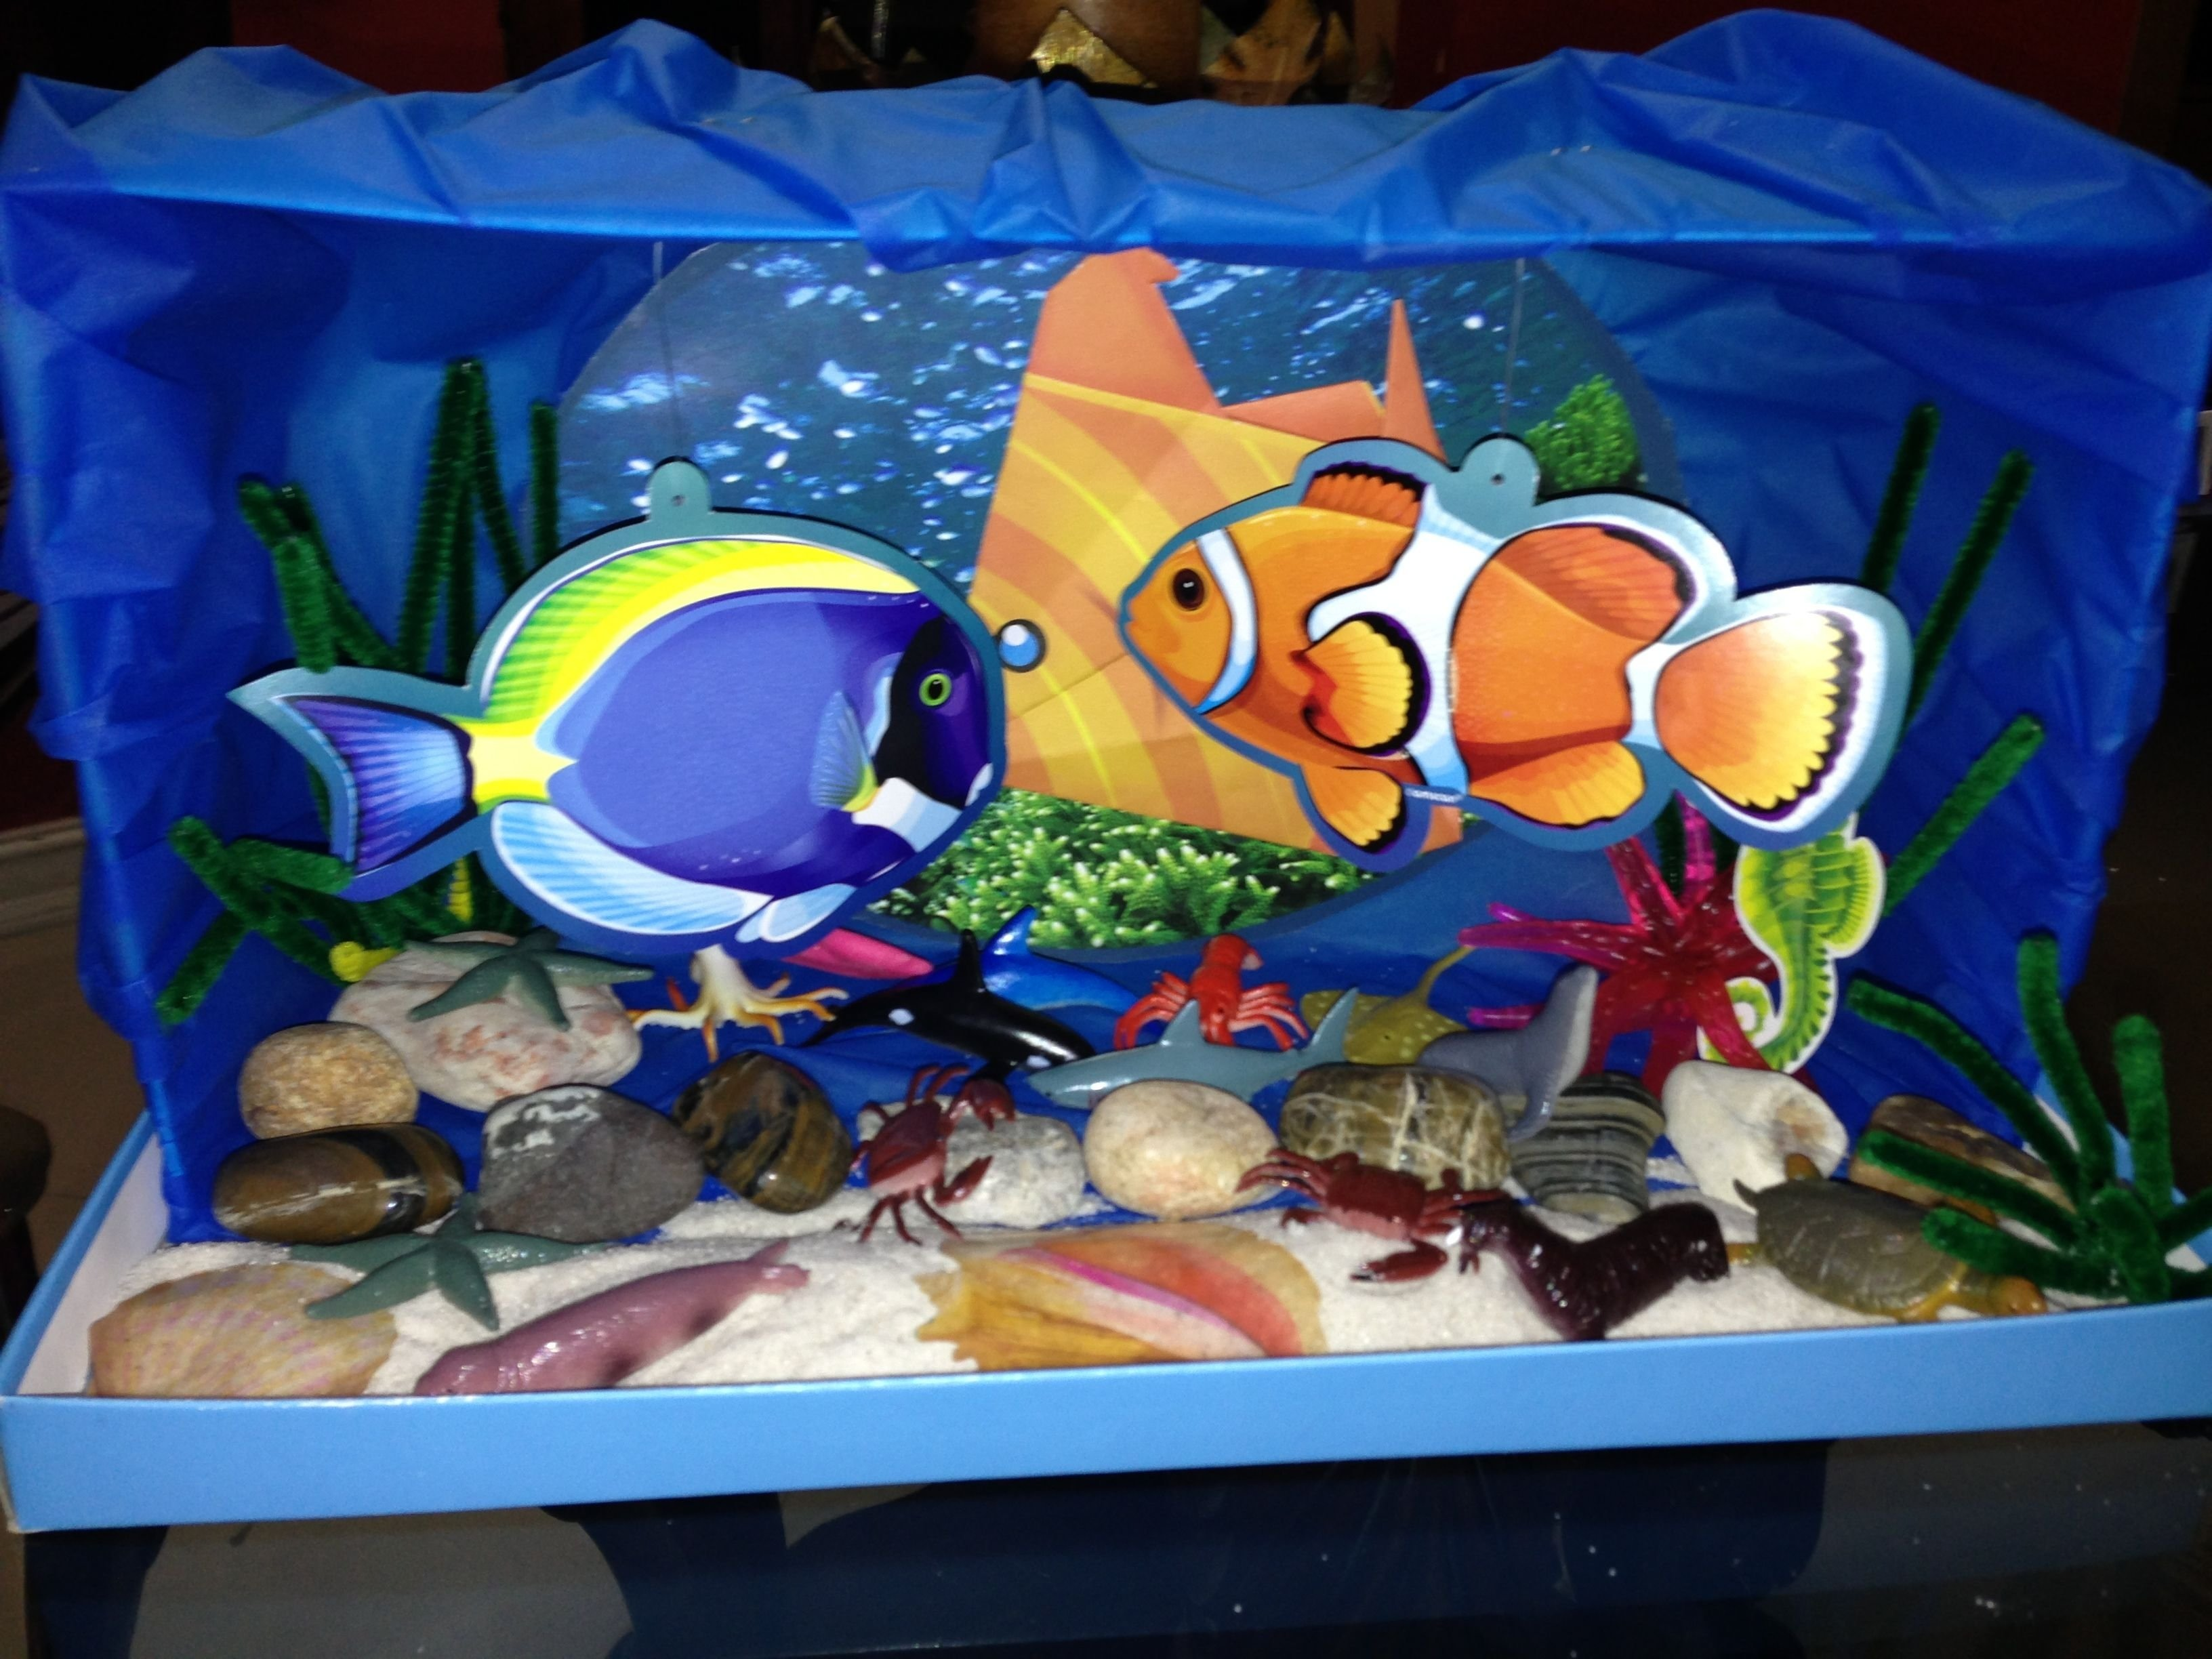 10 Stunning Ocean Diorama Ideas For Kids ocean diorama 1st grade science project pinteres 2020